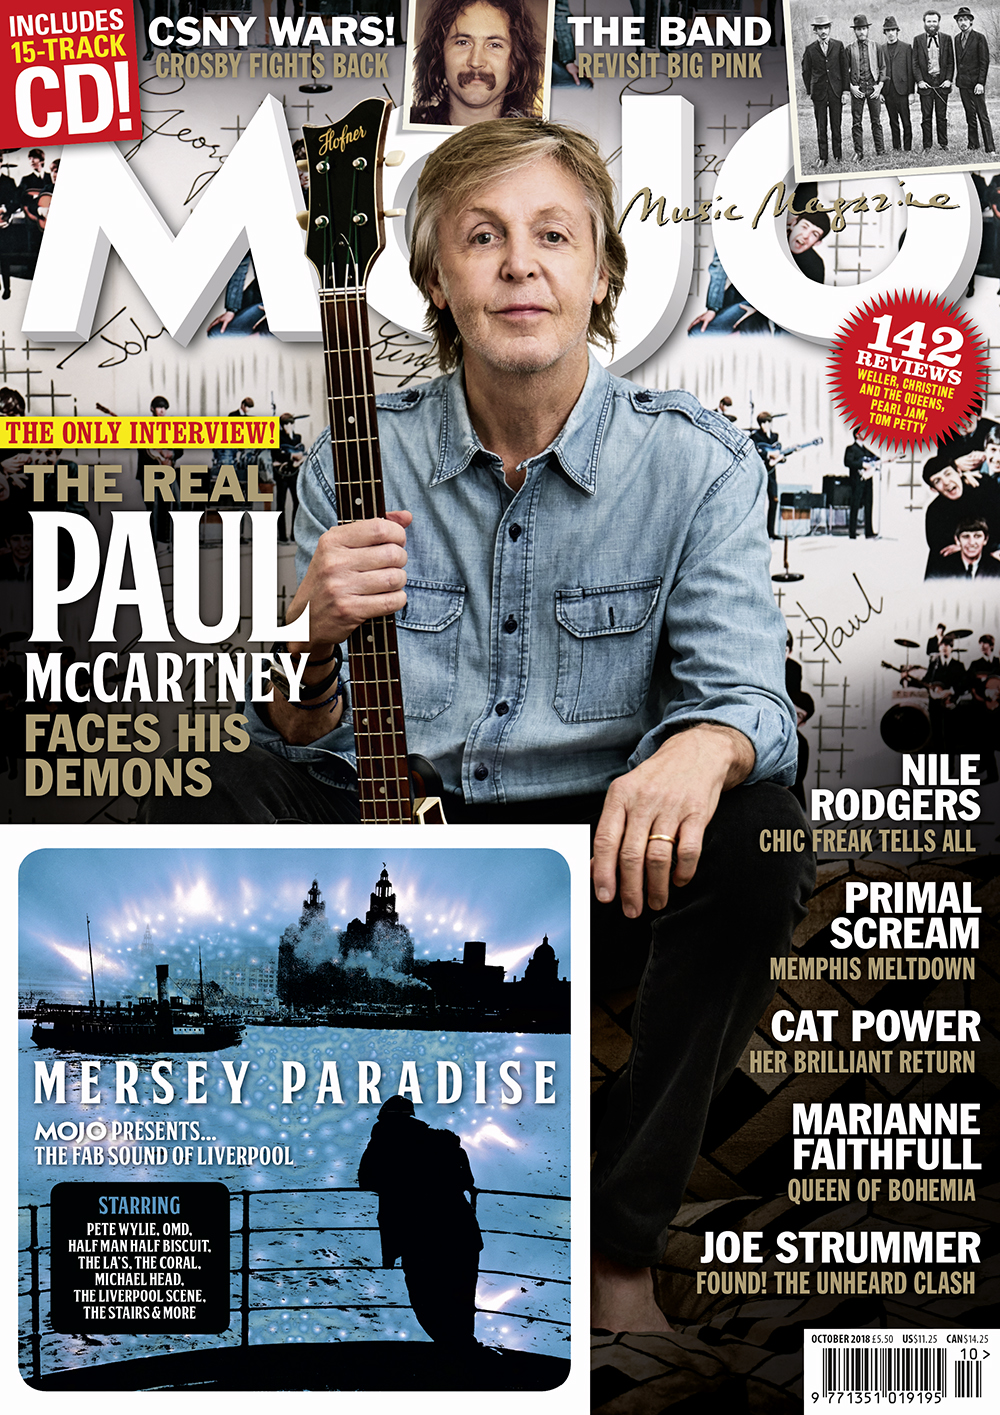 MOJO299_McCartney_CD_1000.jpg